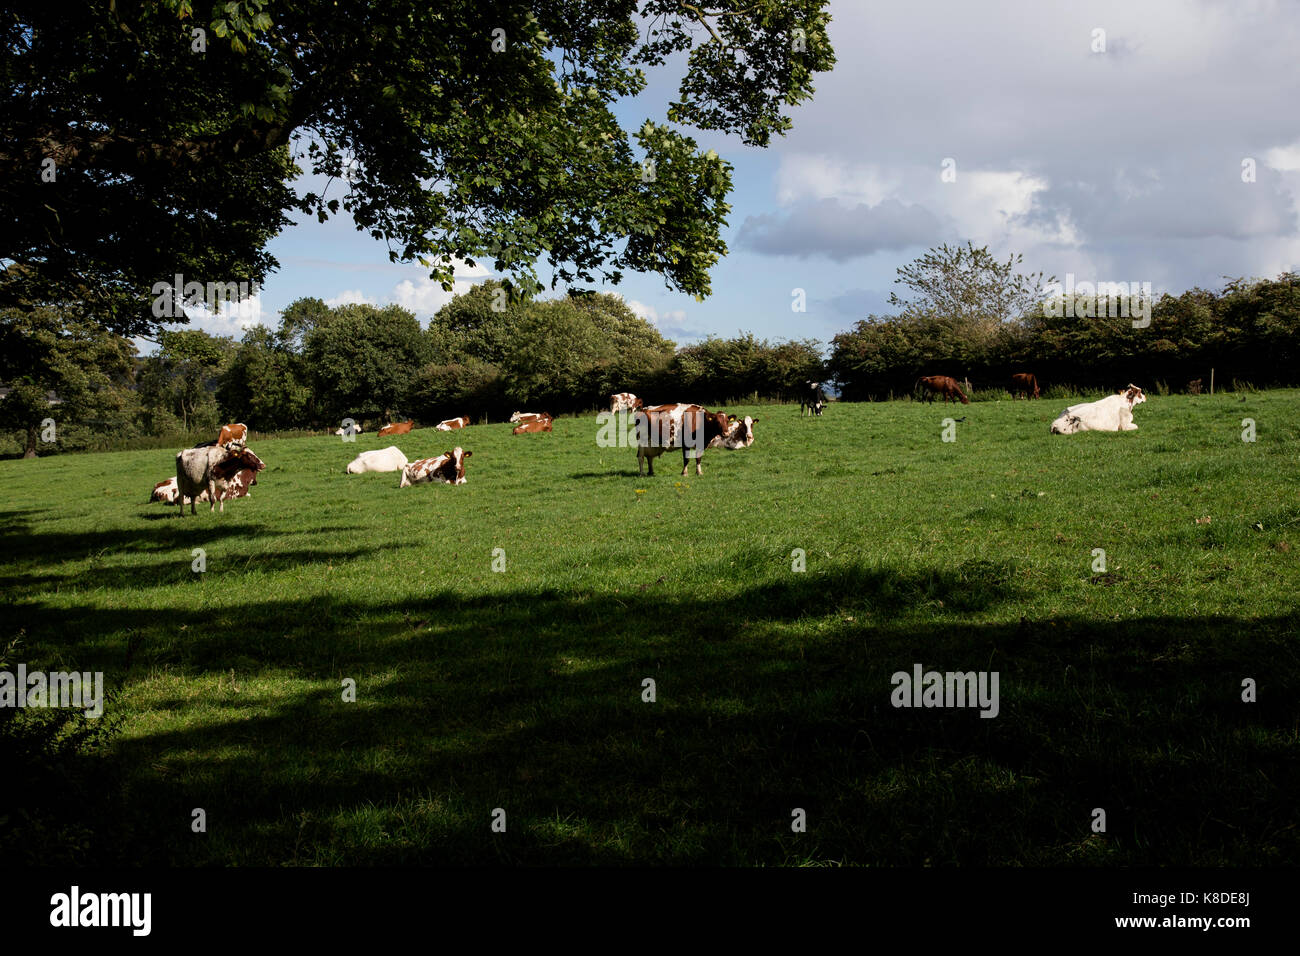 British cows grazing in grassy meadow in summer - Stock Image